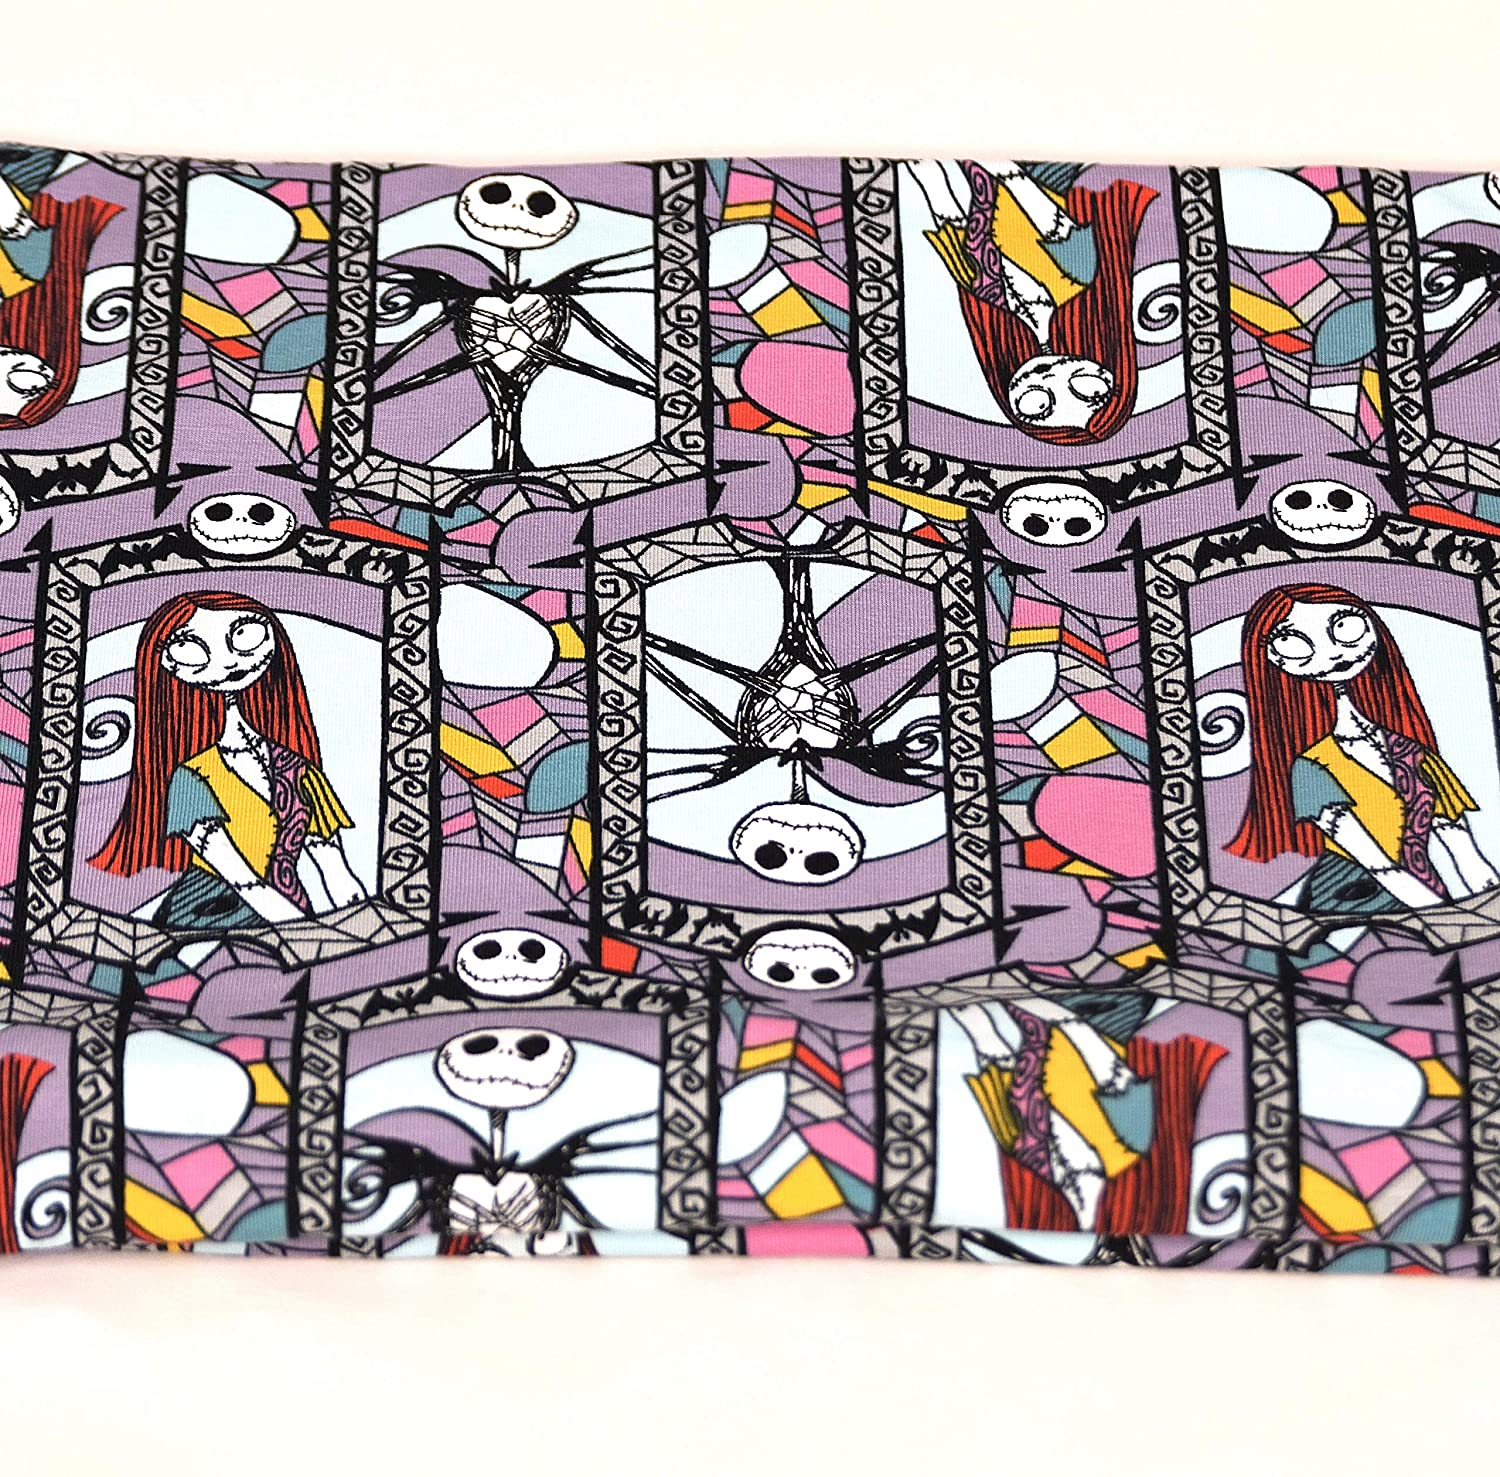 Stain Glass Nightmare Bombing free shipping Before Las Vegas Mall Christmas scarf Scarf Loop Infinity